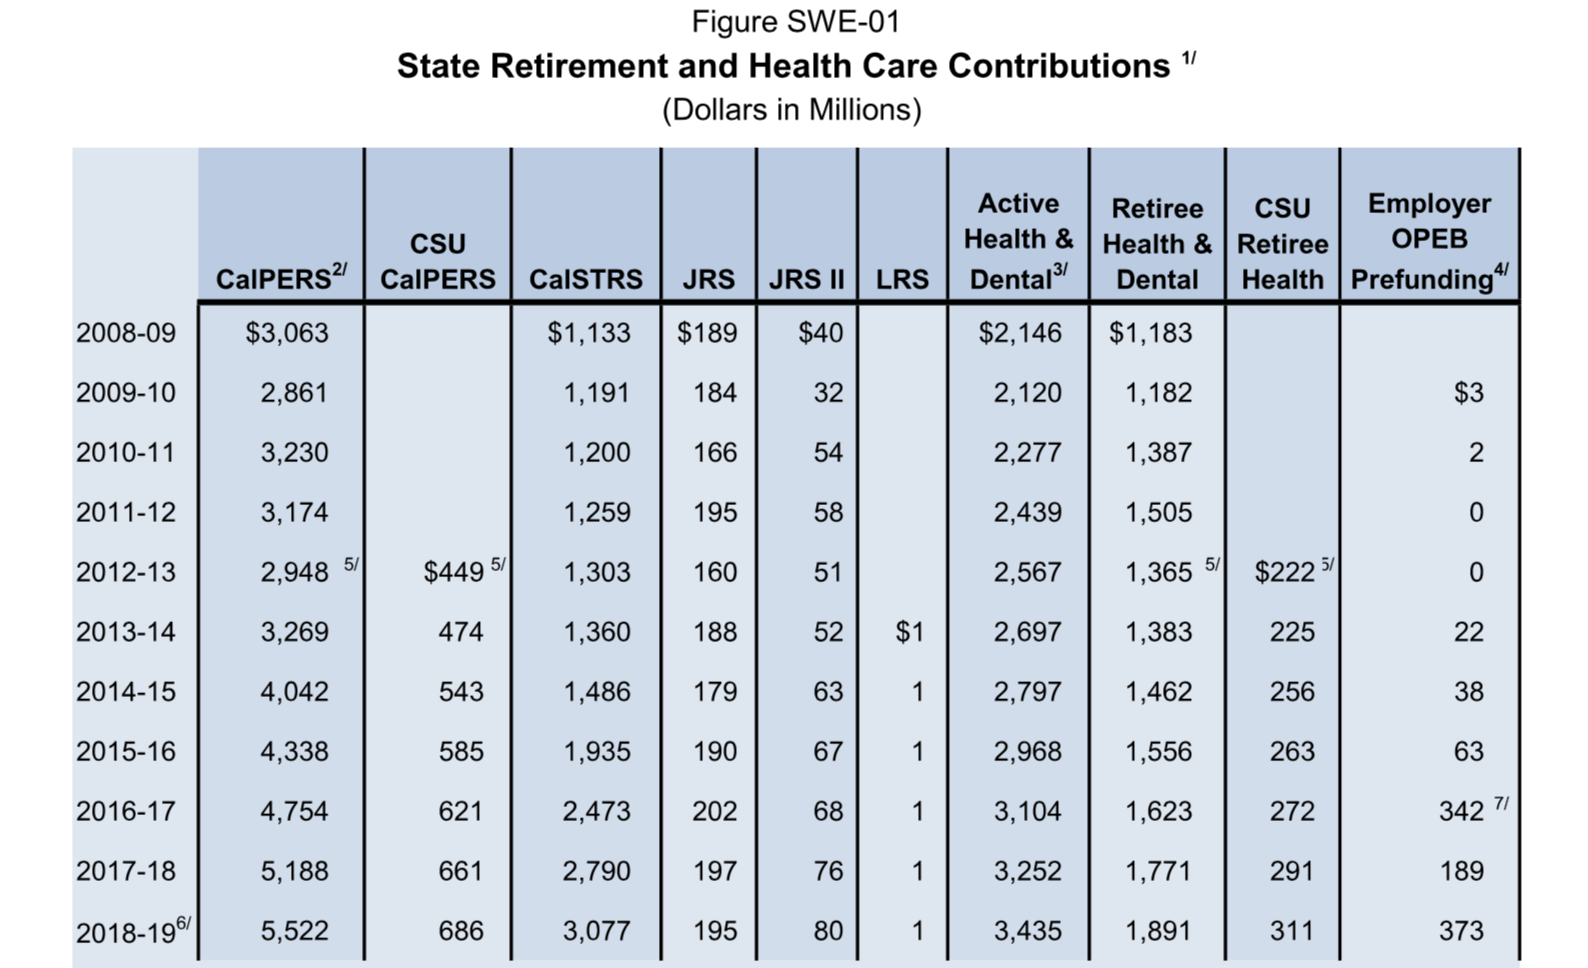 State Retirement and Health Care Contributions